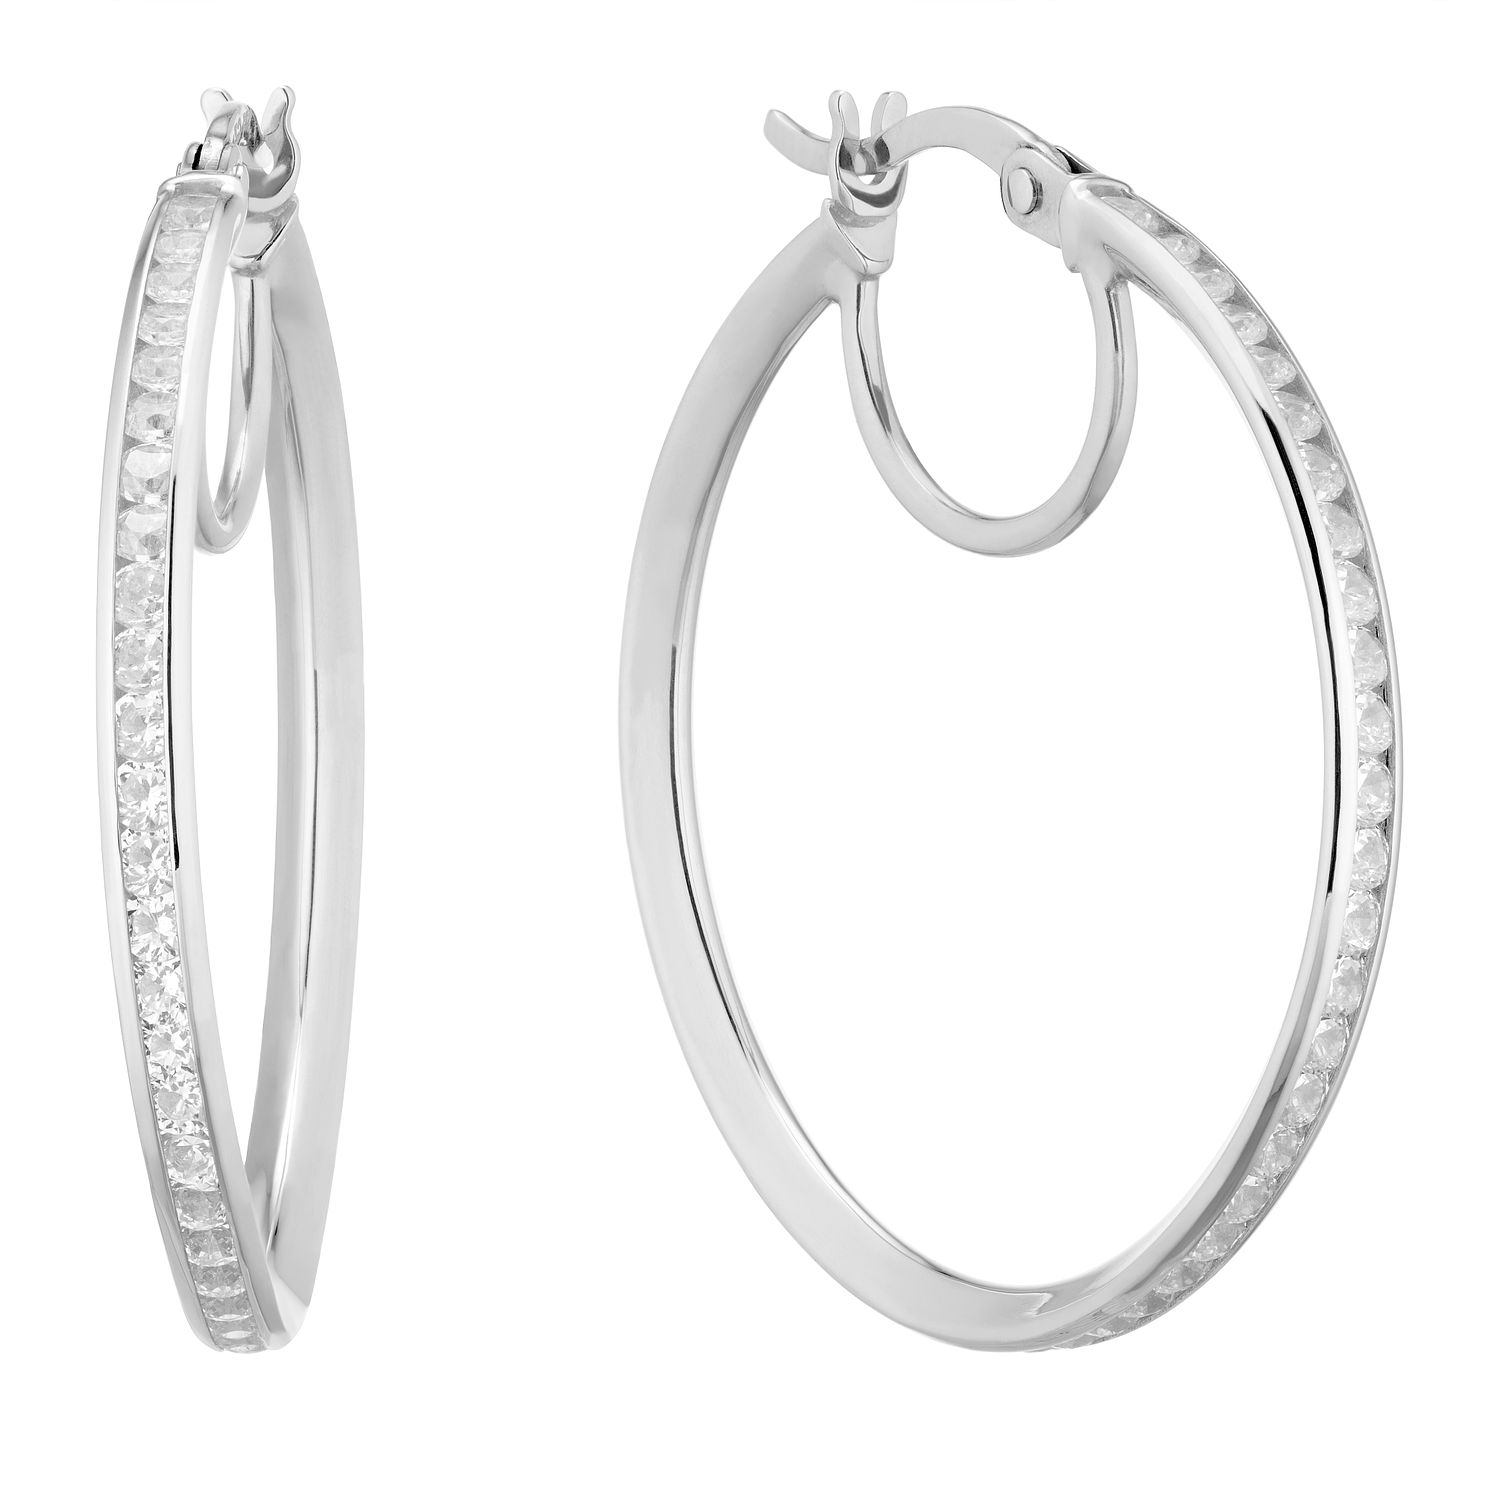 9ct White Gold Cubic Zirconia Hoop Earrings - Product number 5241340